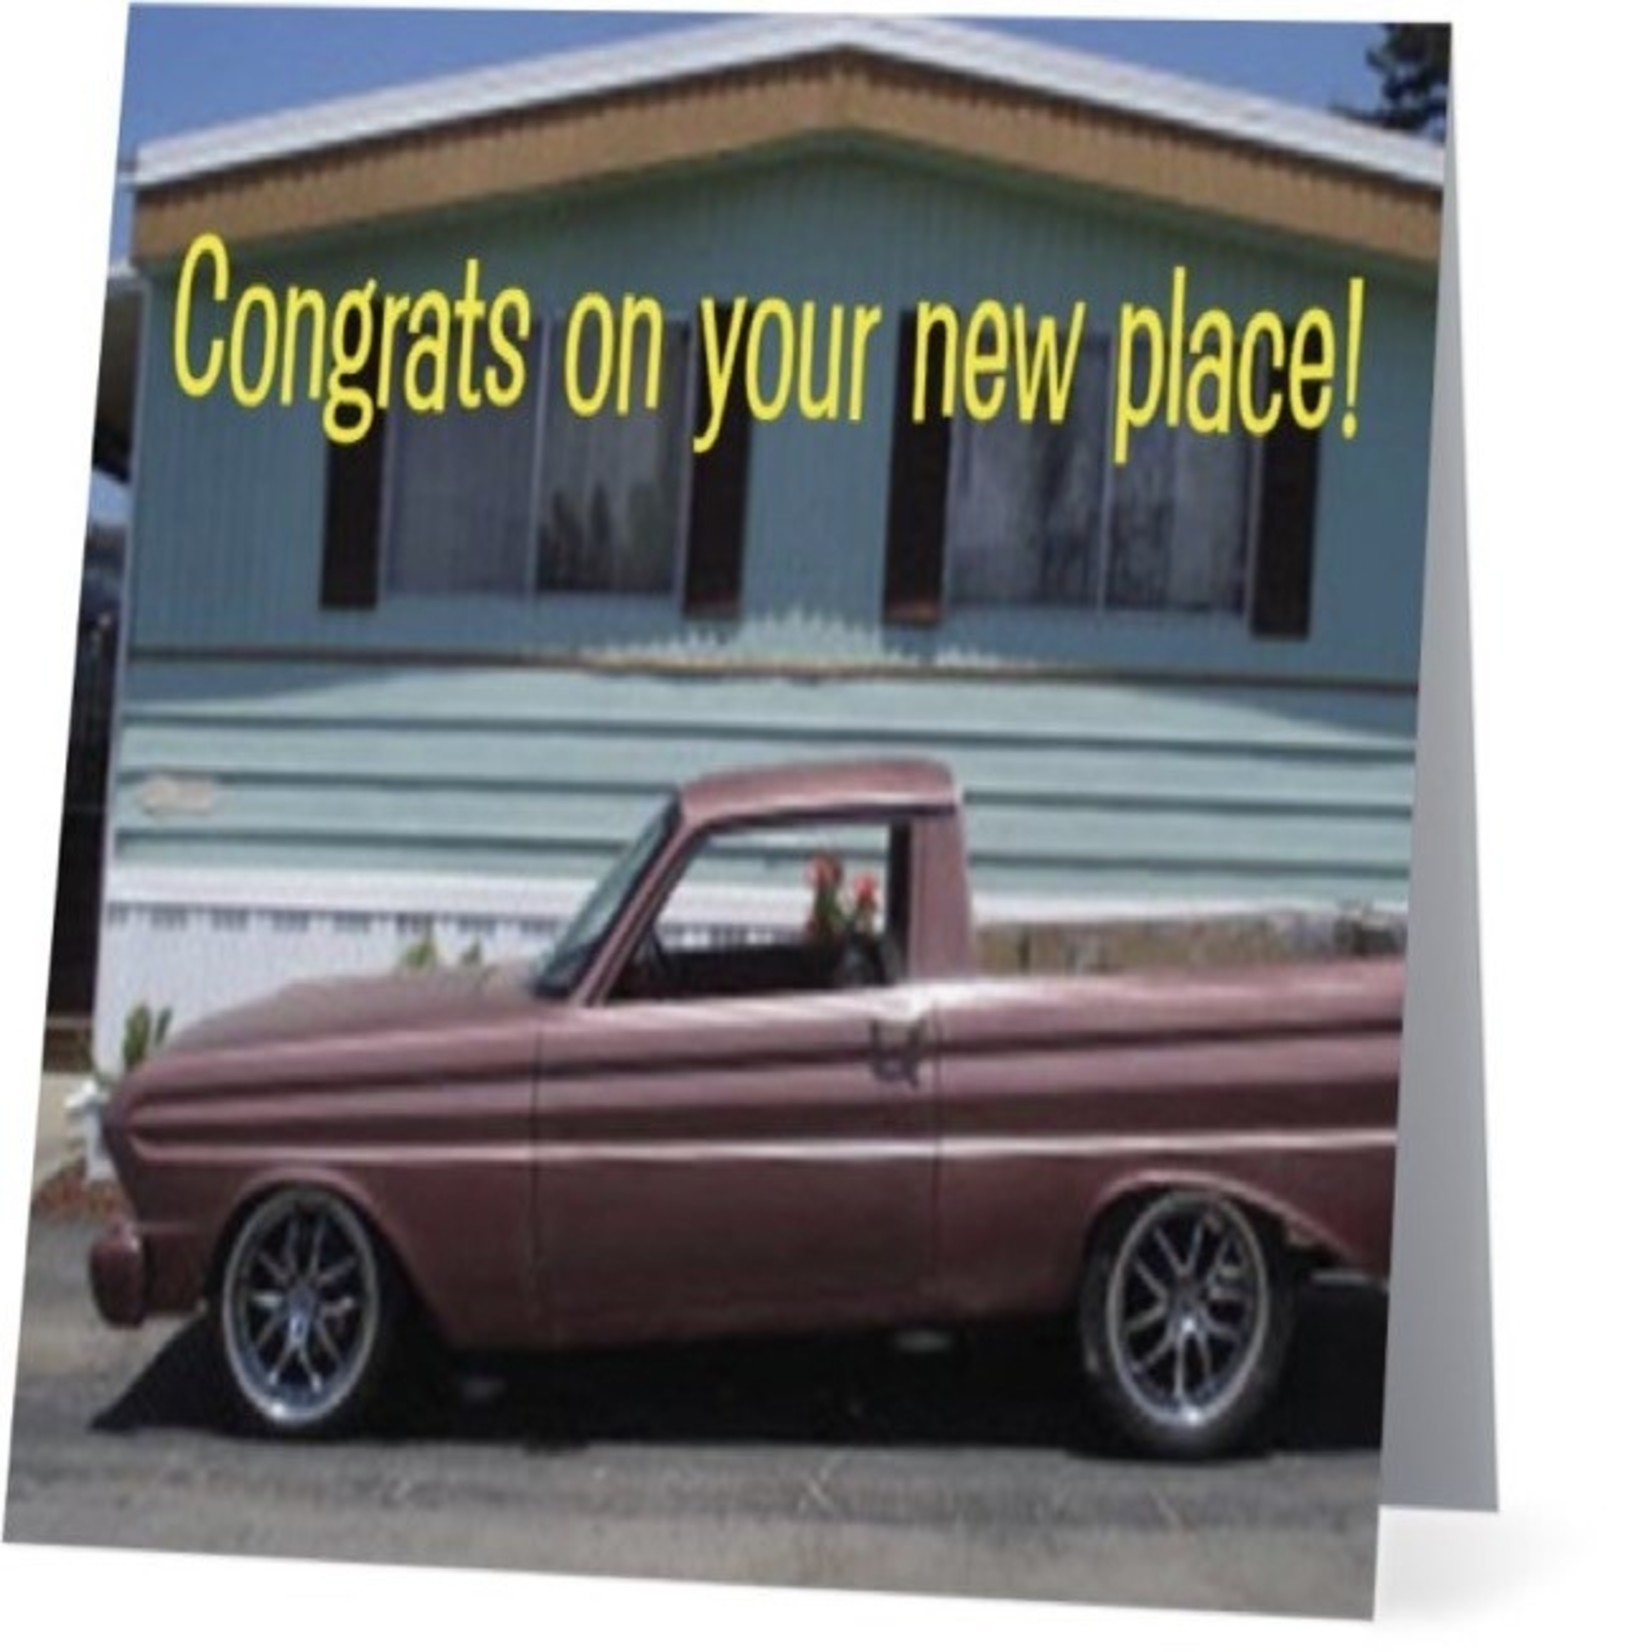 Bad Annie's Card #033 - Congrats On Your New Place